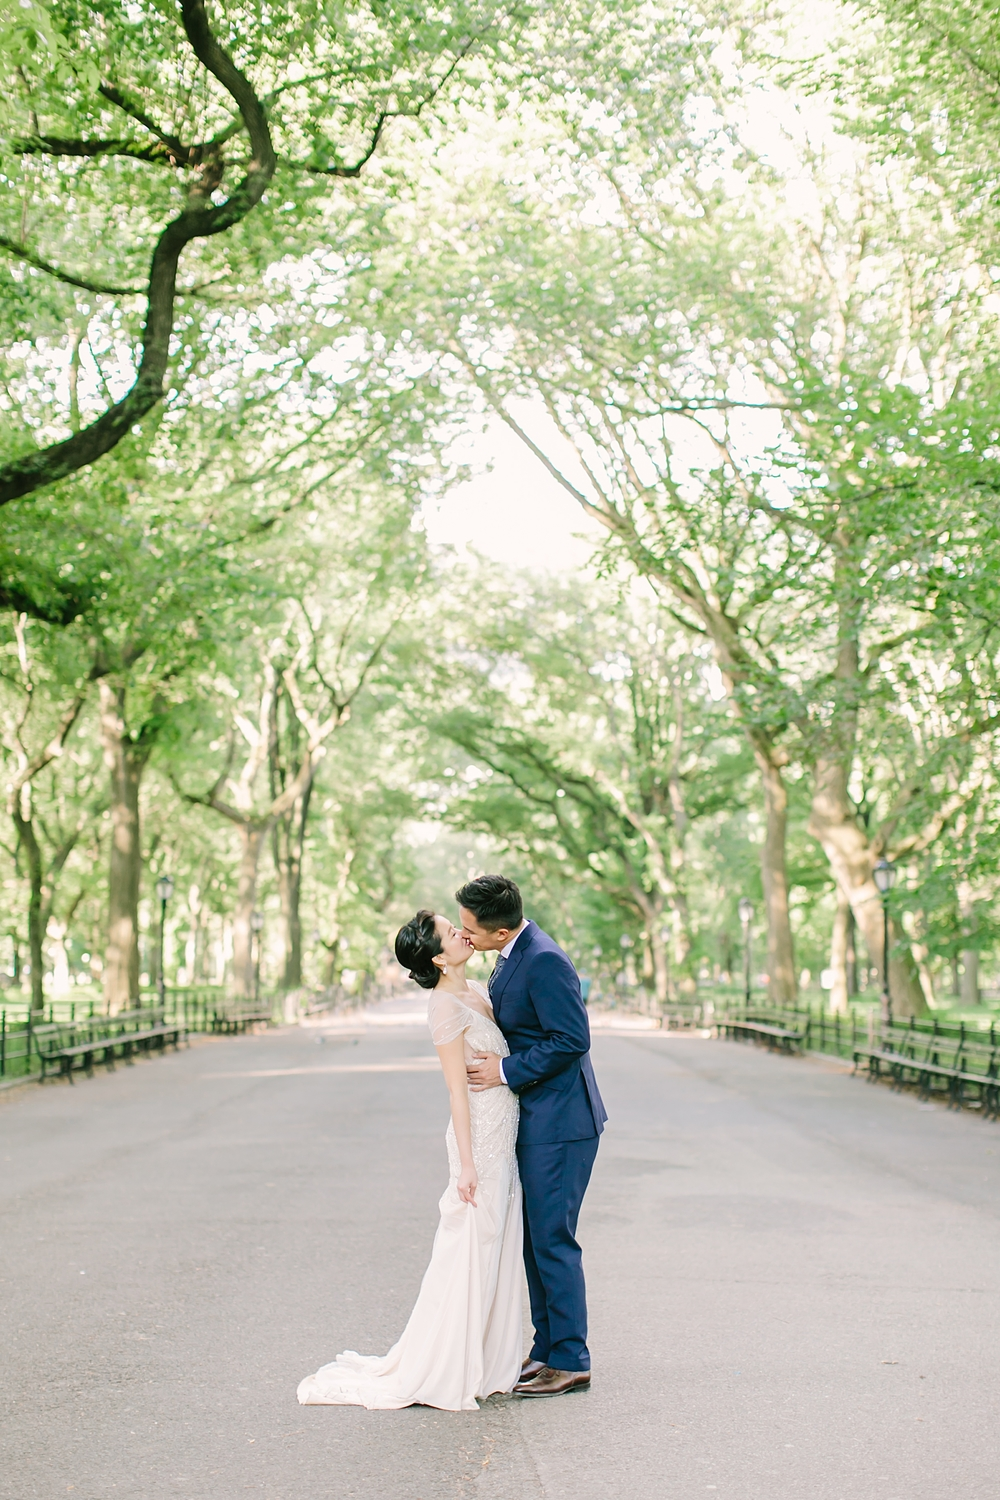 times_square_central_park_new_york_wedding_photos_0017.jpg